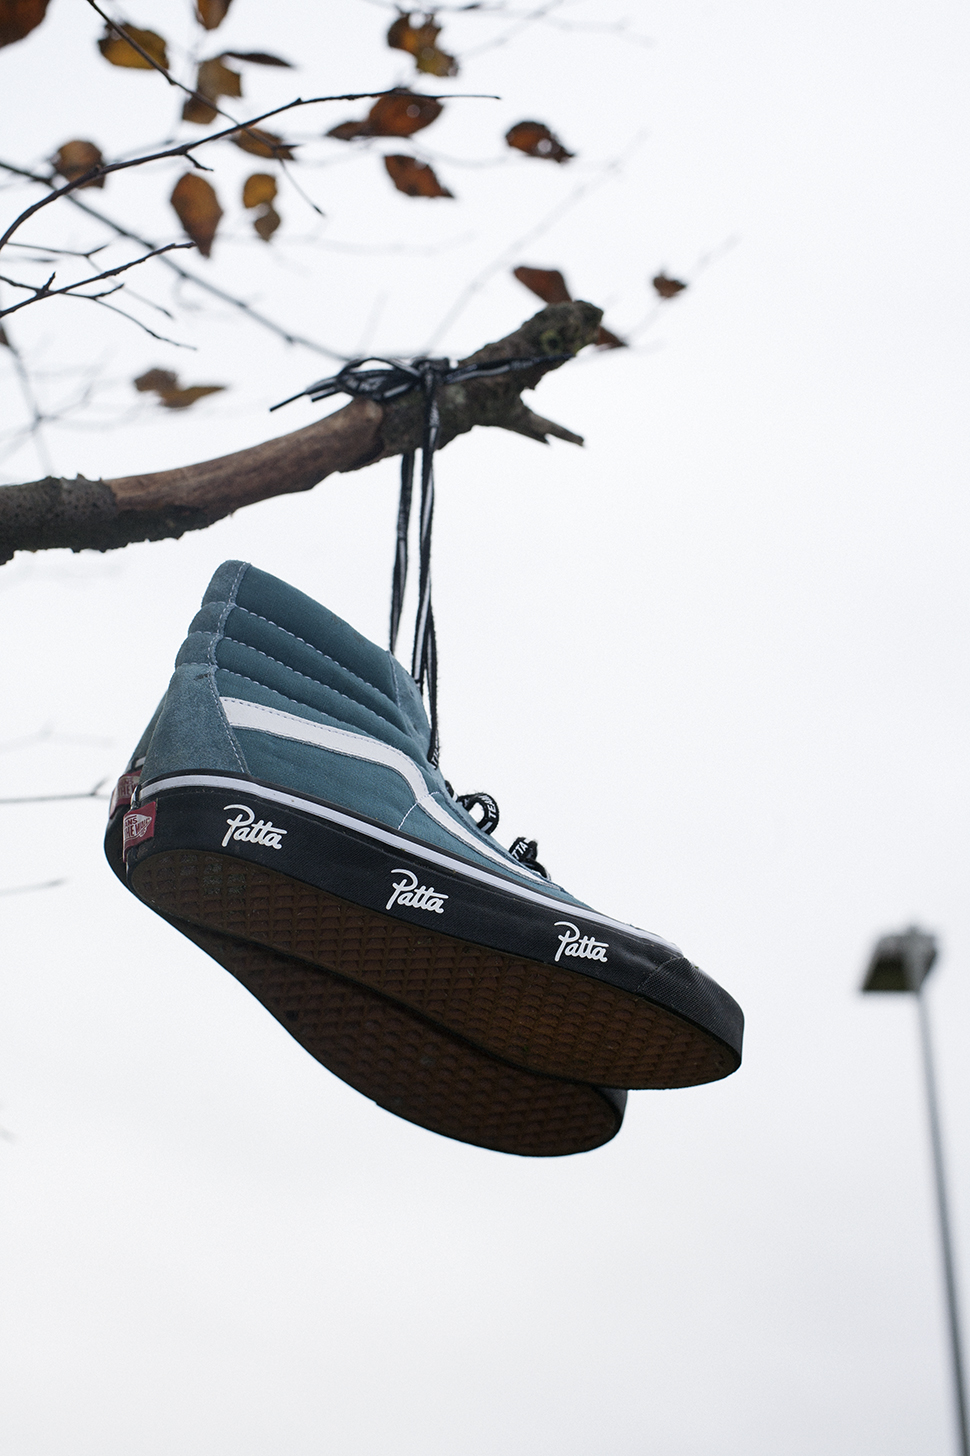 Vans x Patta Sk8 Hi Collection